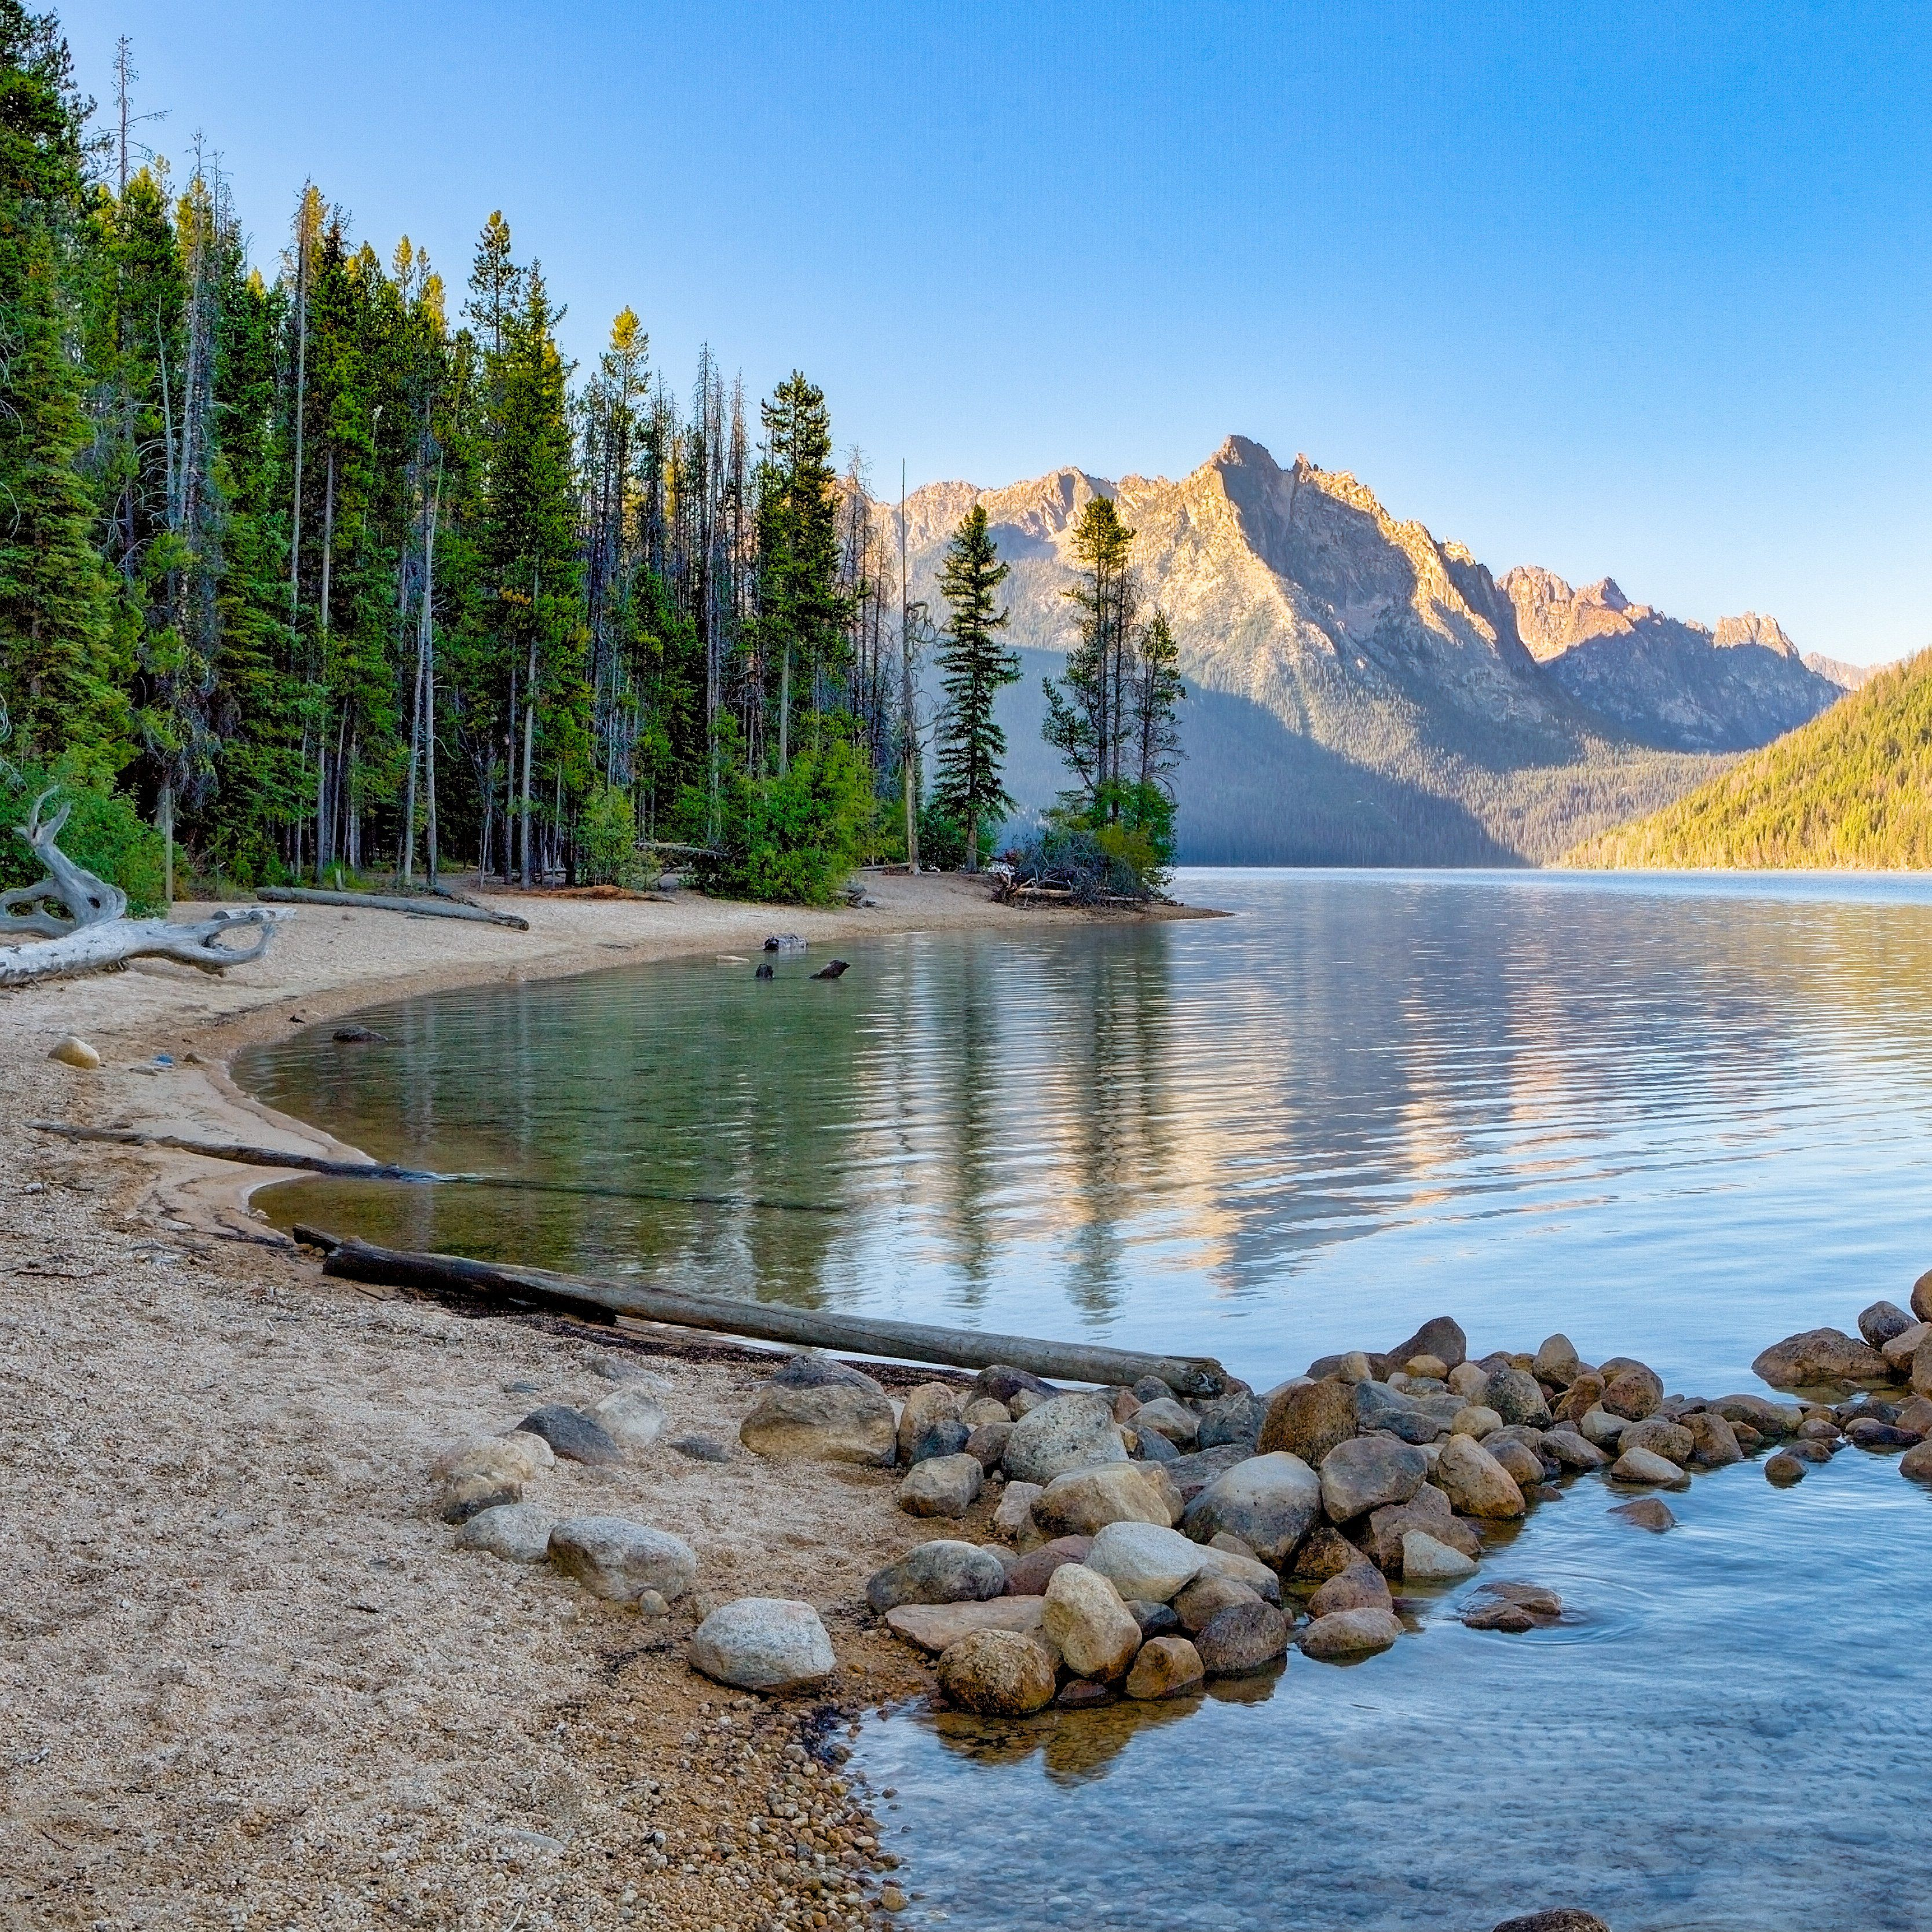 Redfish Lake in Idaho is one of the most picturesque places in the country for an active, outdoorsy getaway.